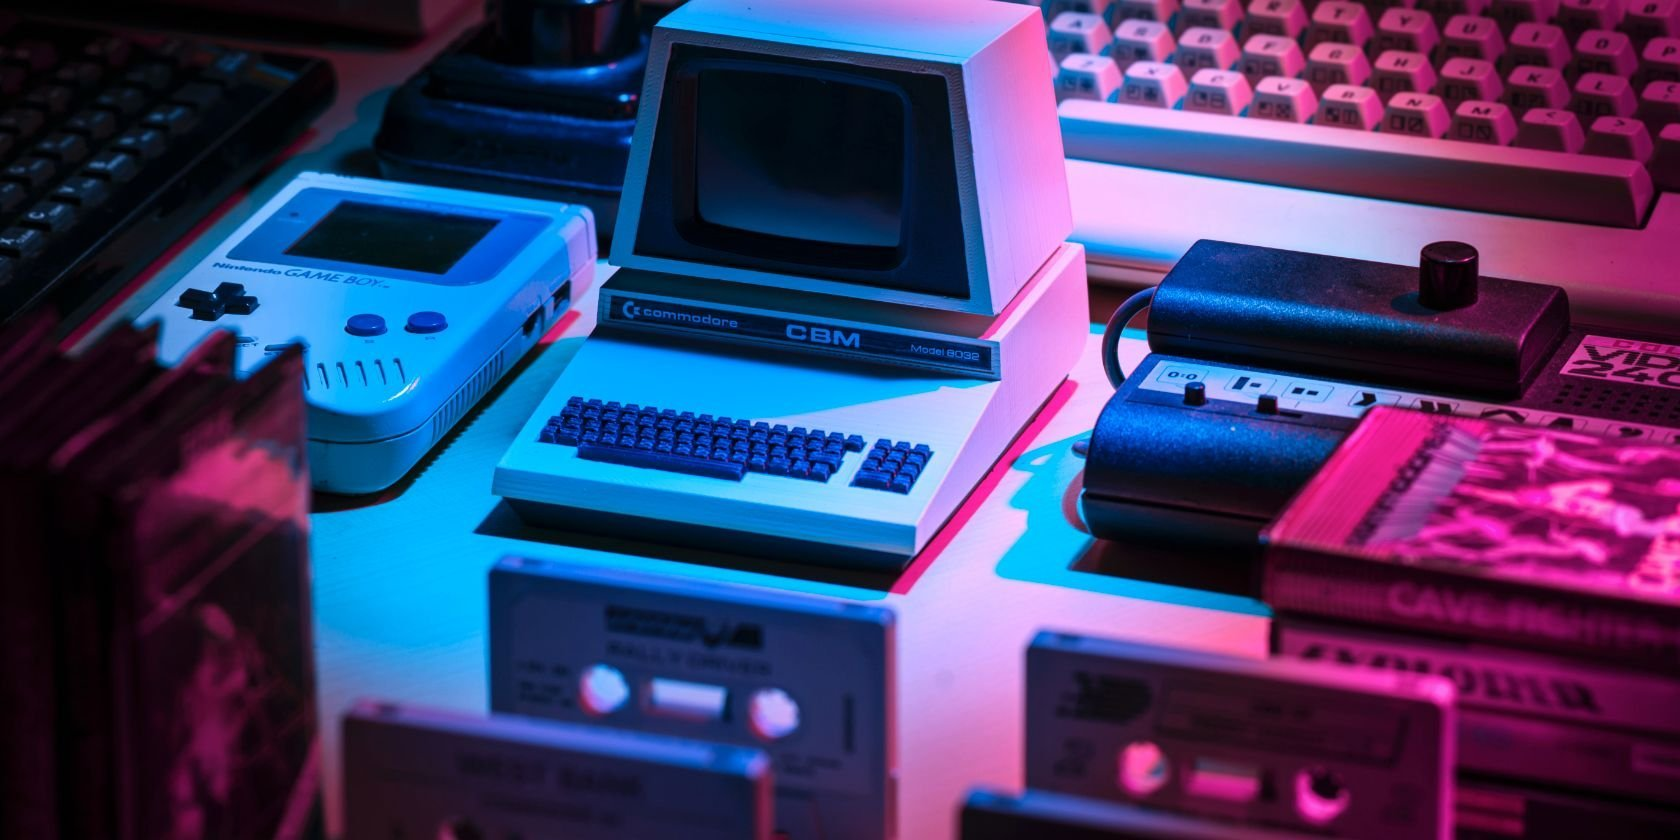 8 Gadgets and Devices We'd Travel Back in Time For